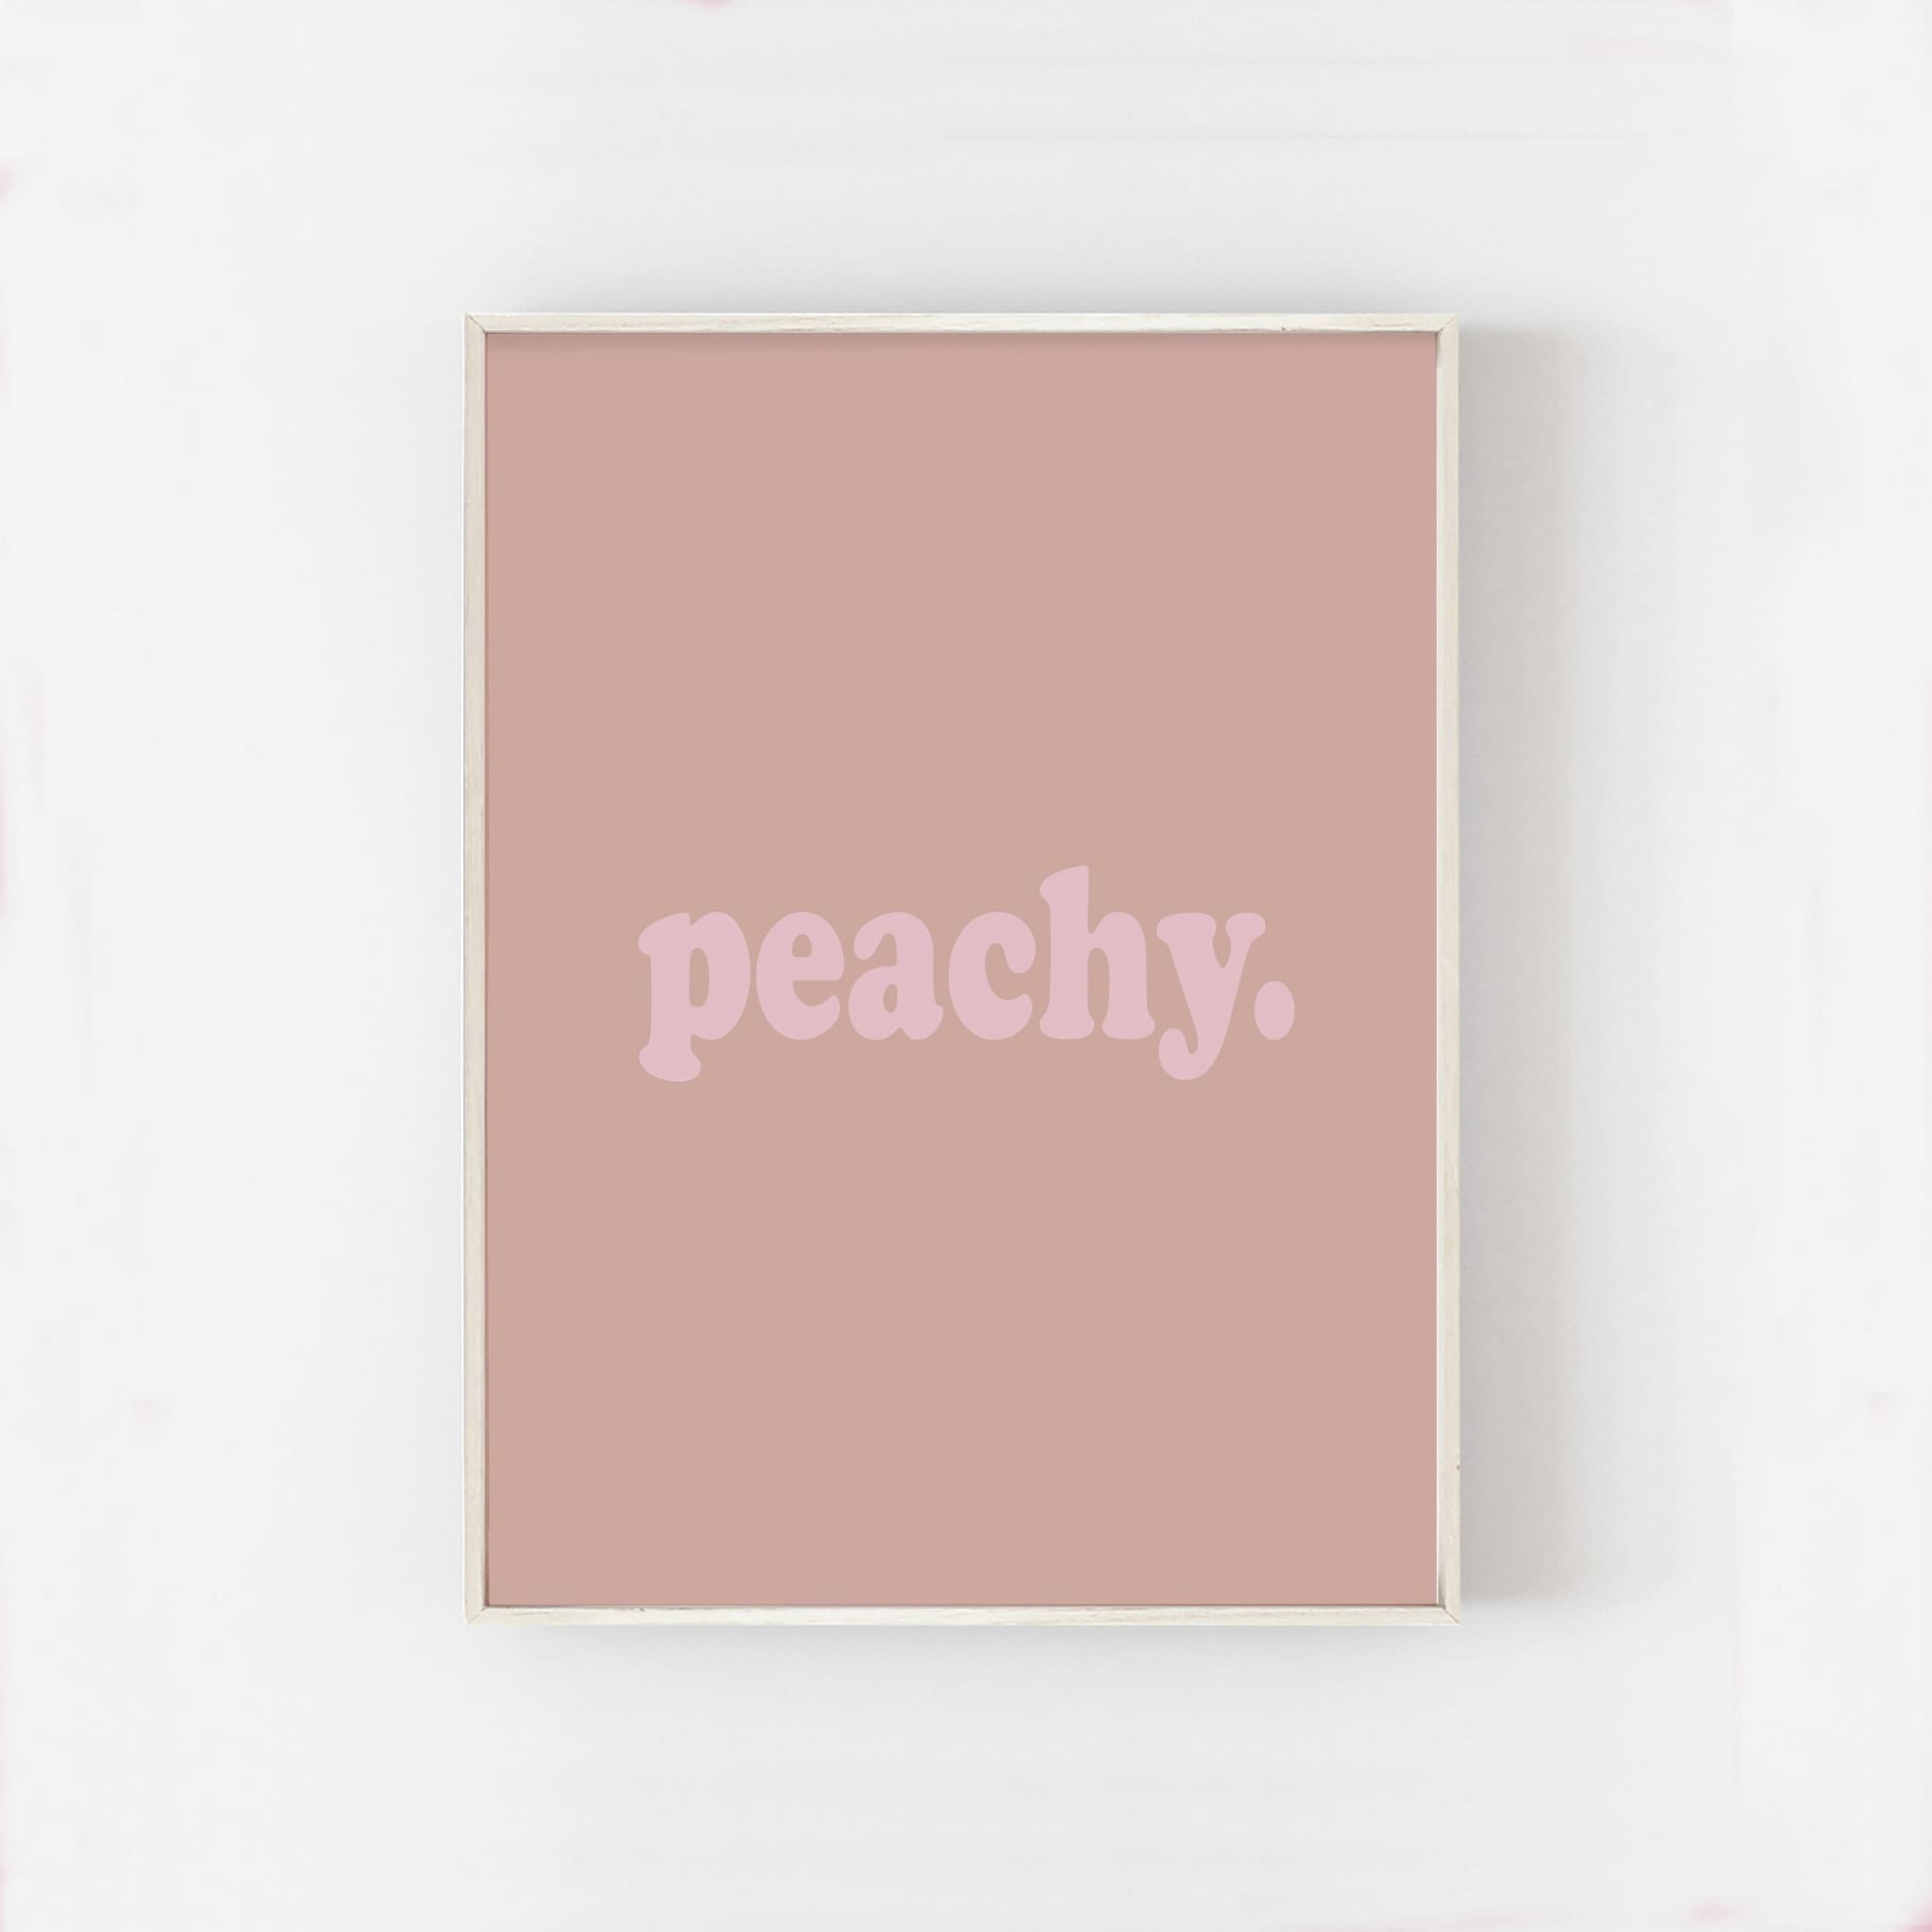 PEACHY - HONEYMOON HOTEL